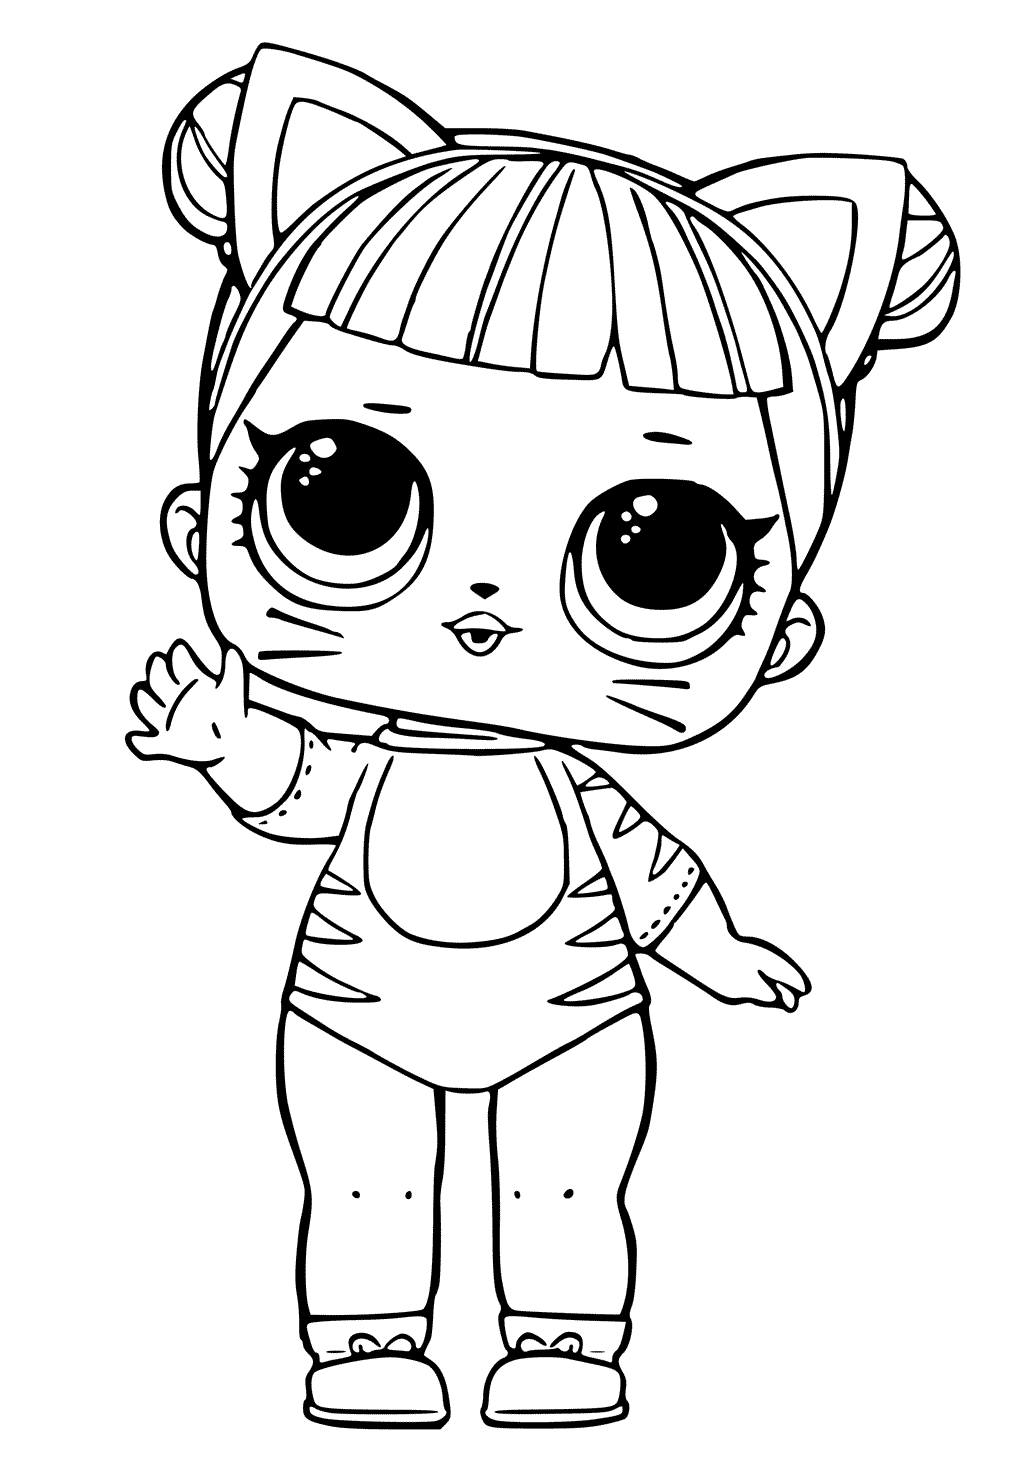 Baby Cat LOL Dolls Coloring Pages | Baby coloring pages, Cat coloring page,  Kitty coloring